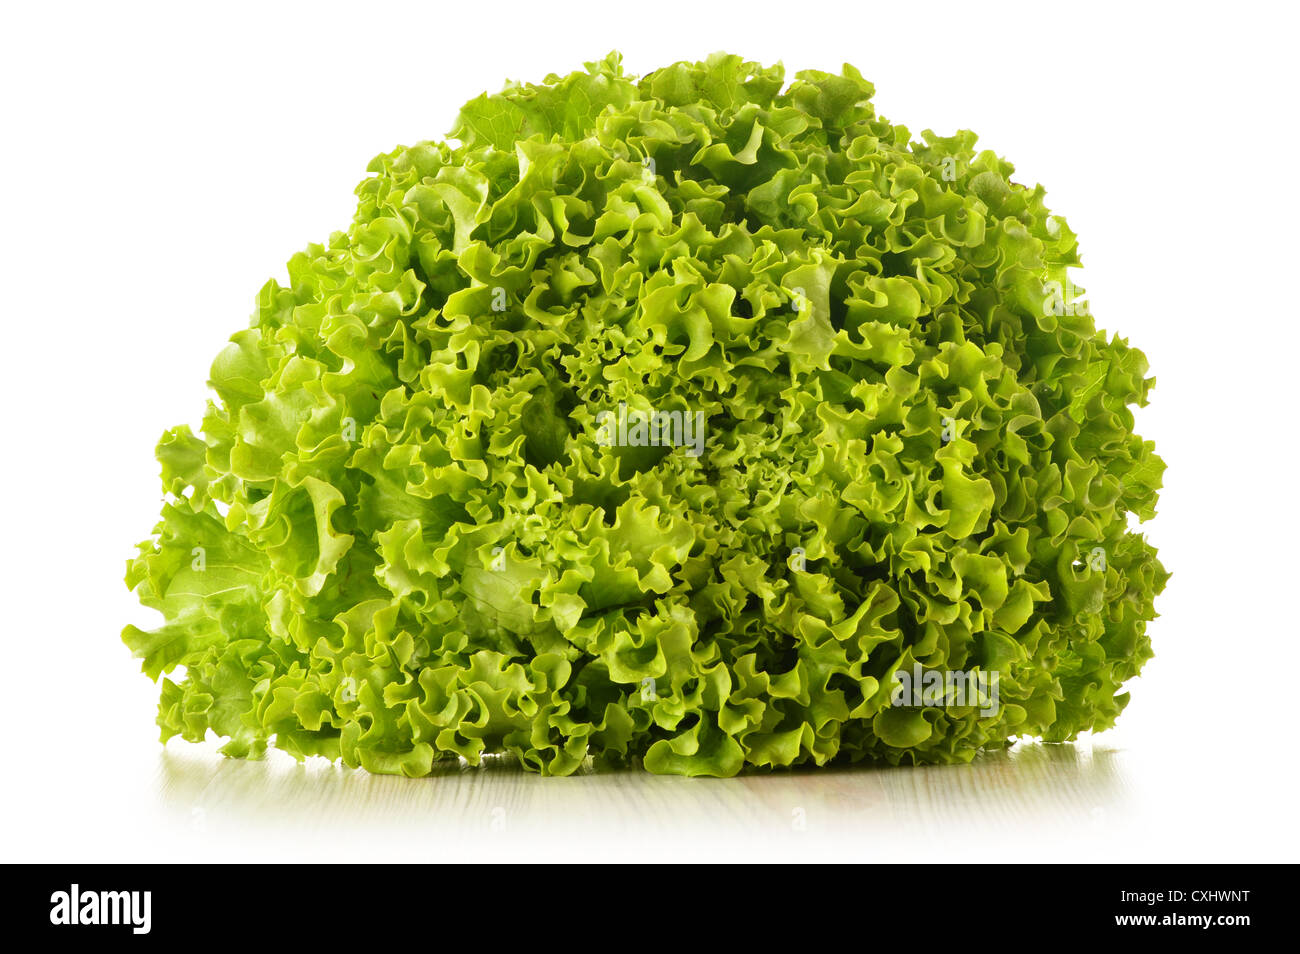 Green leaves lettuce isolated on white background - Stock Image